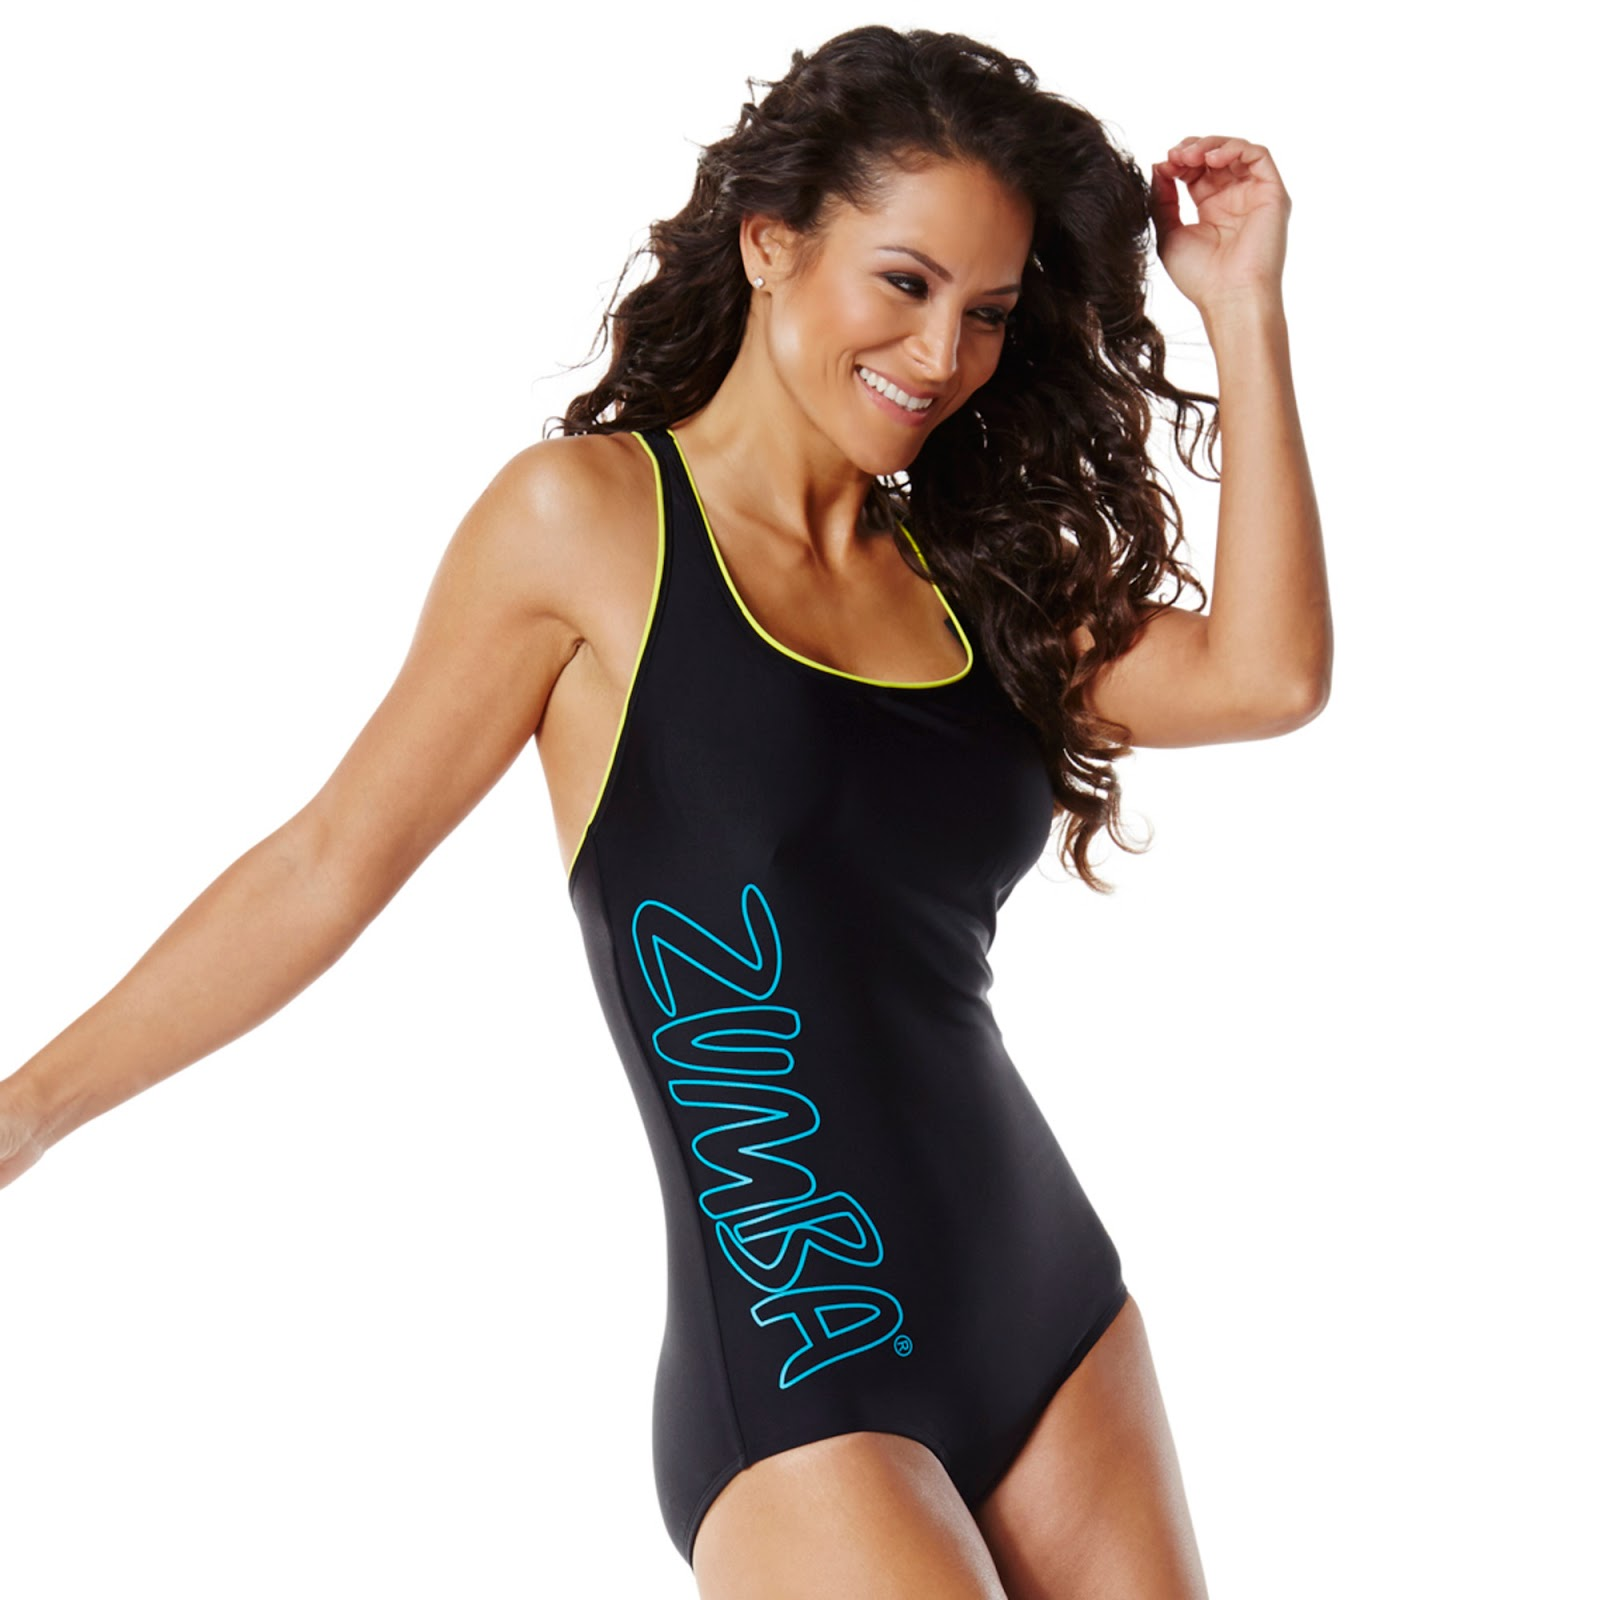 http://www.zumba.com/en-US/store-zin/US/product/rock-with-me-ultraback-one-piece?color=Black